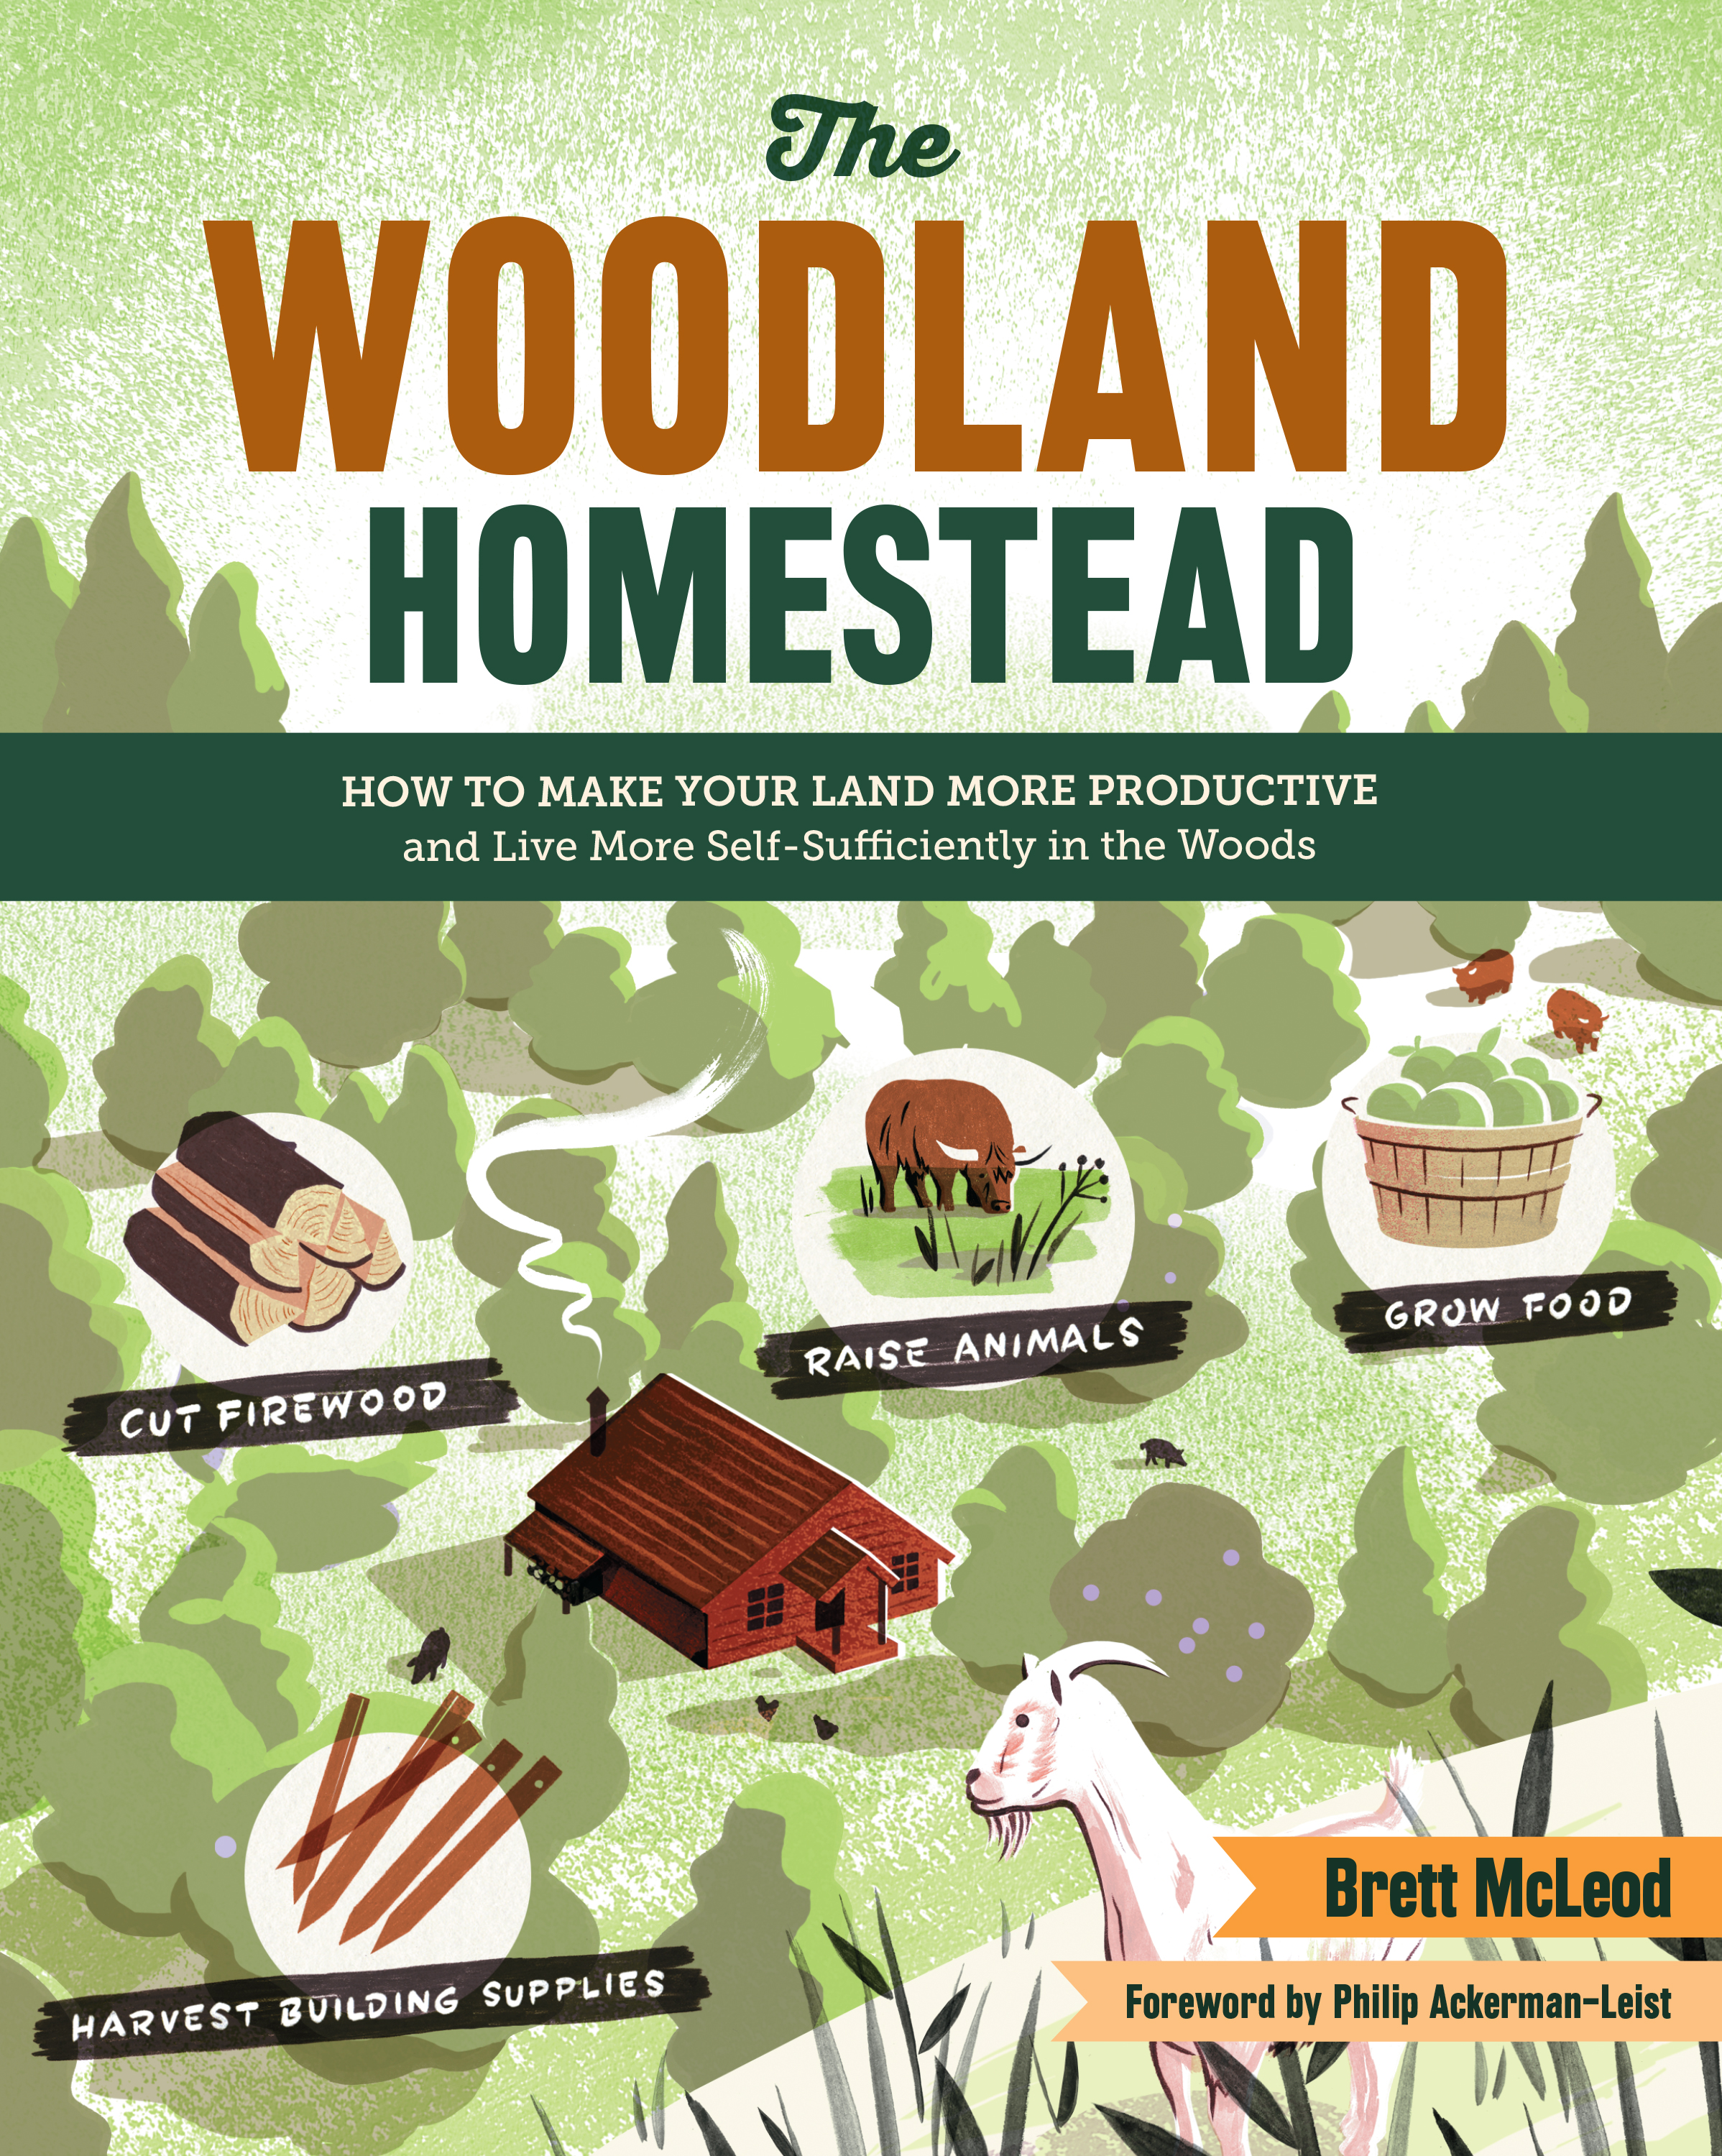 The Woodland Homestead How to Make Your Land More Productive and Live More Self-Sufficiently in the Woods - Brett McLeod